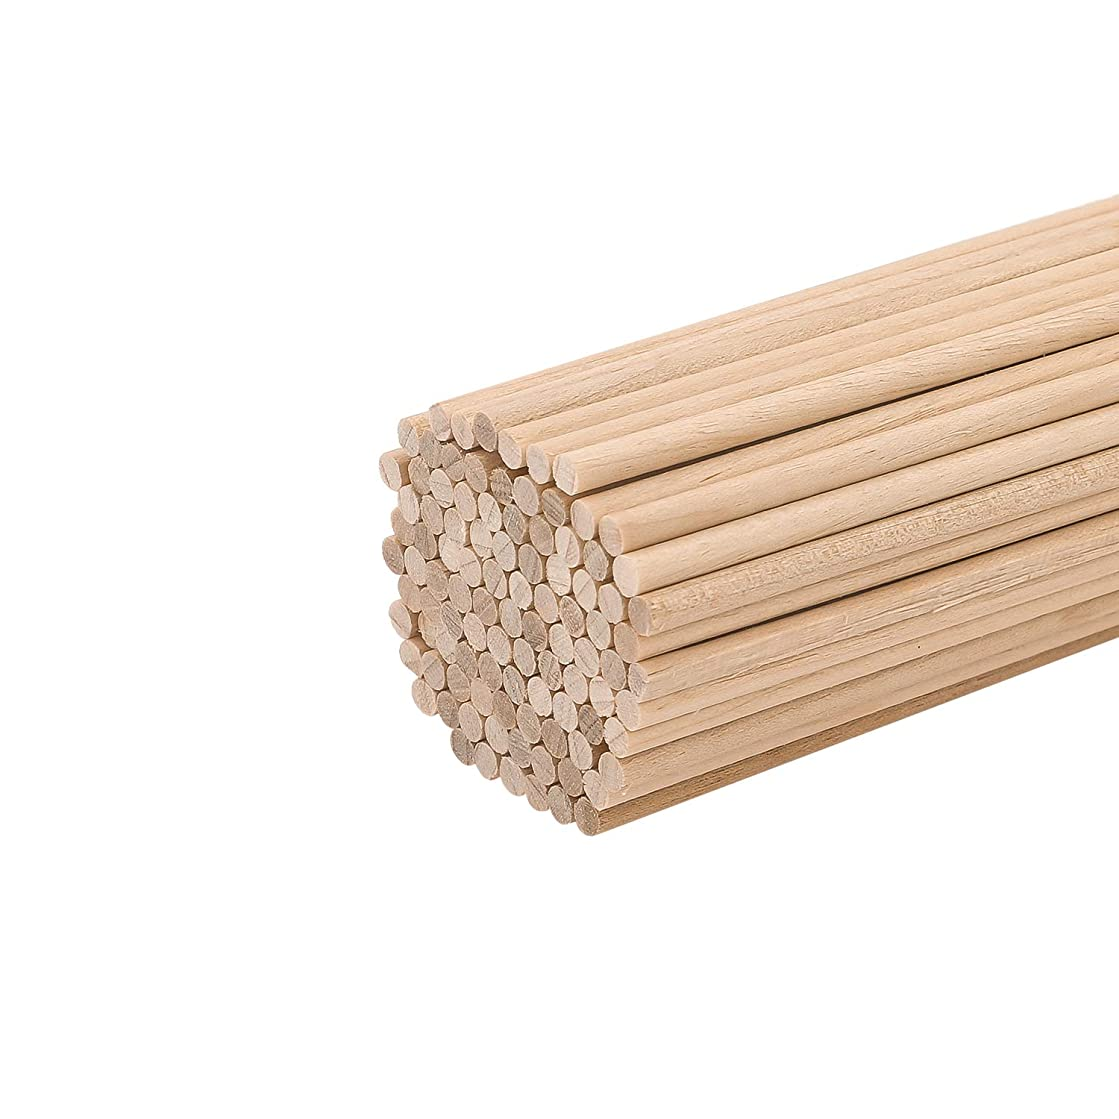 "Wooden Dowel Rods 1/8"" x 12"", Favordrory Unfinished Natural Wood Craft Dowel Rods 100 Pack"